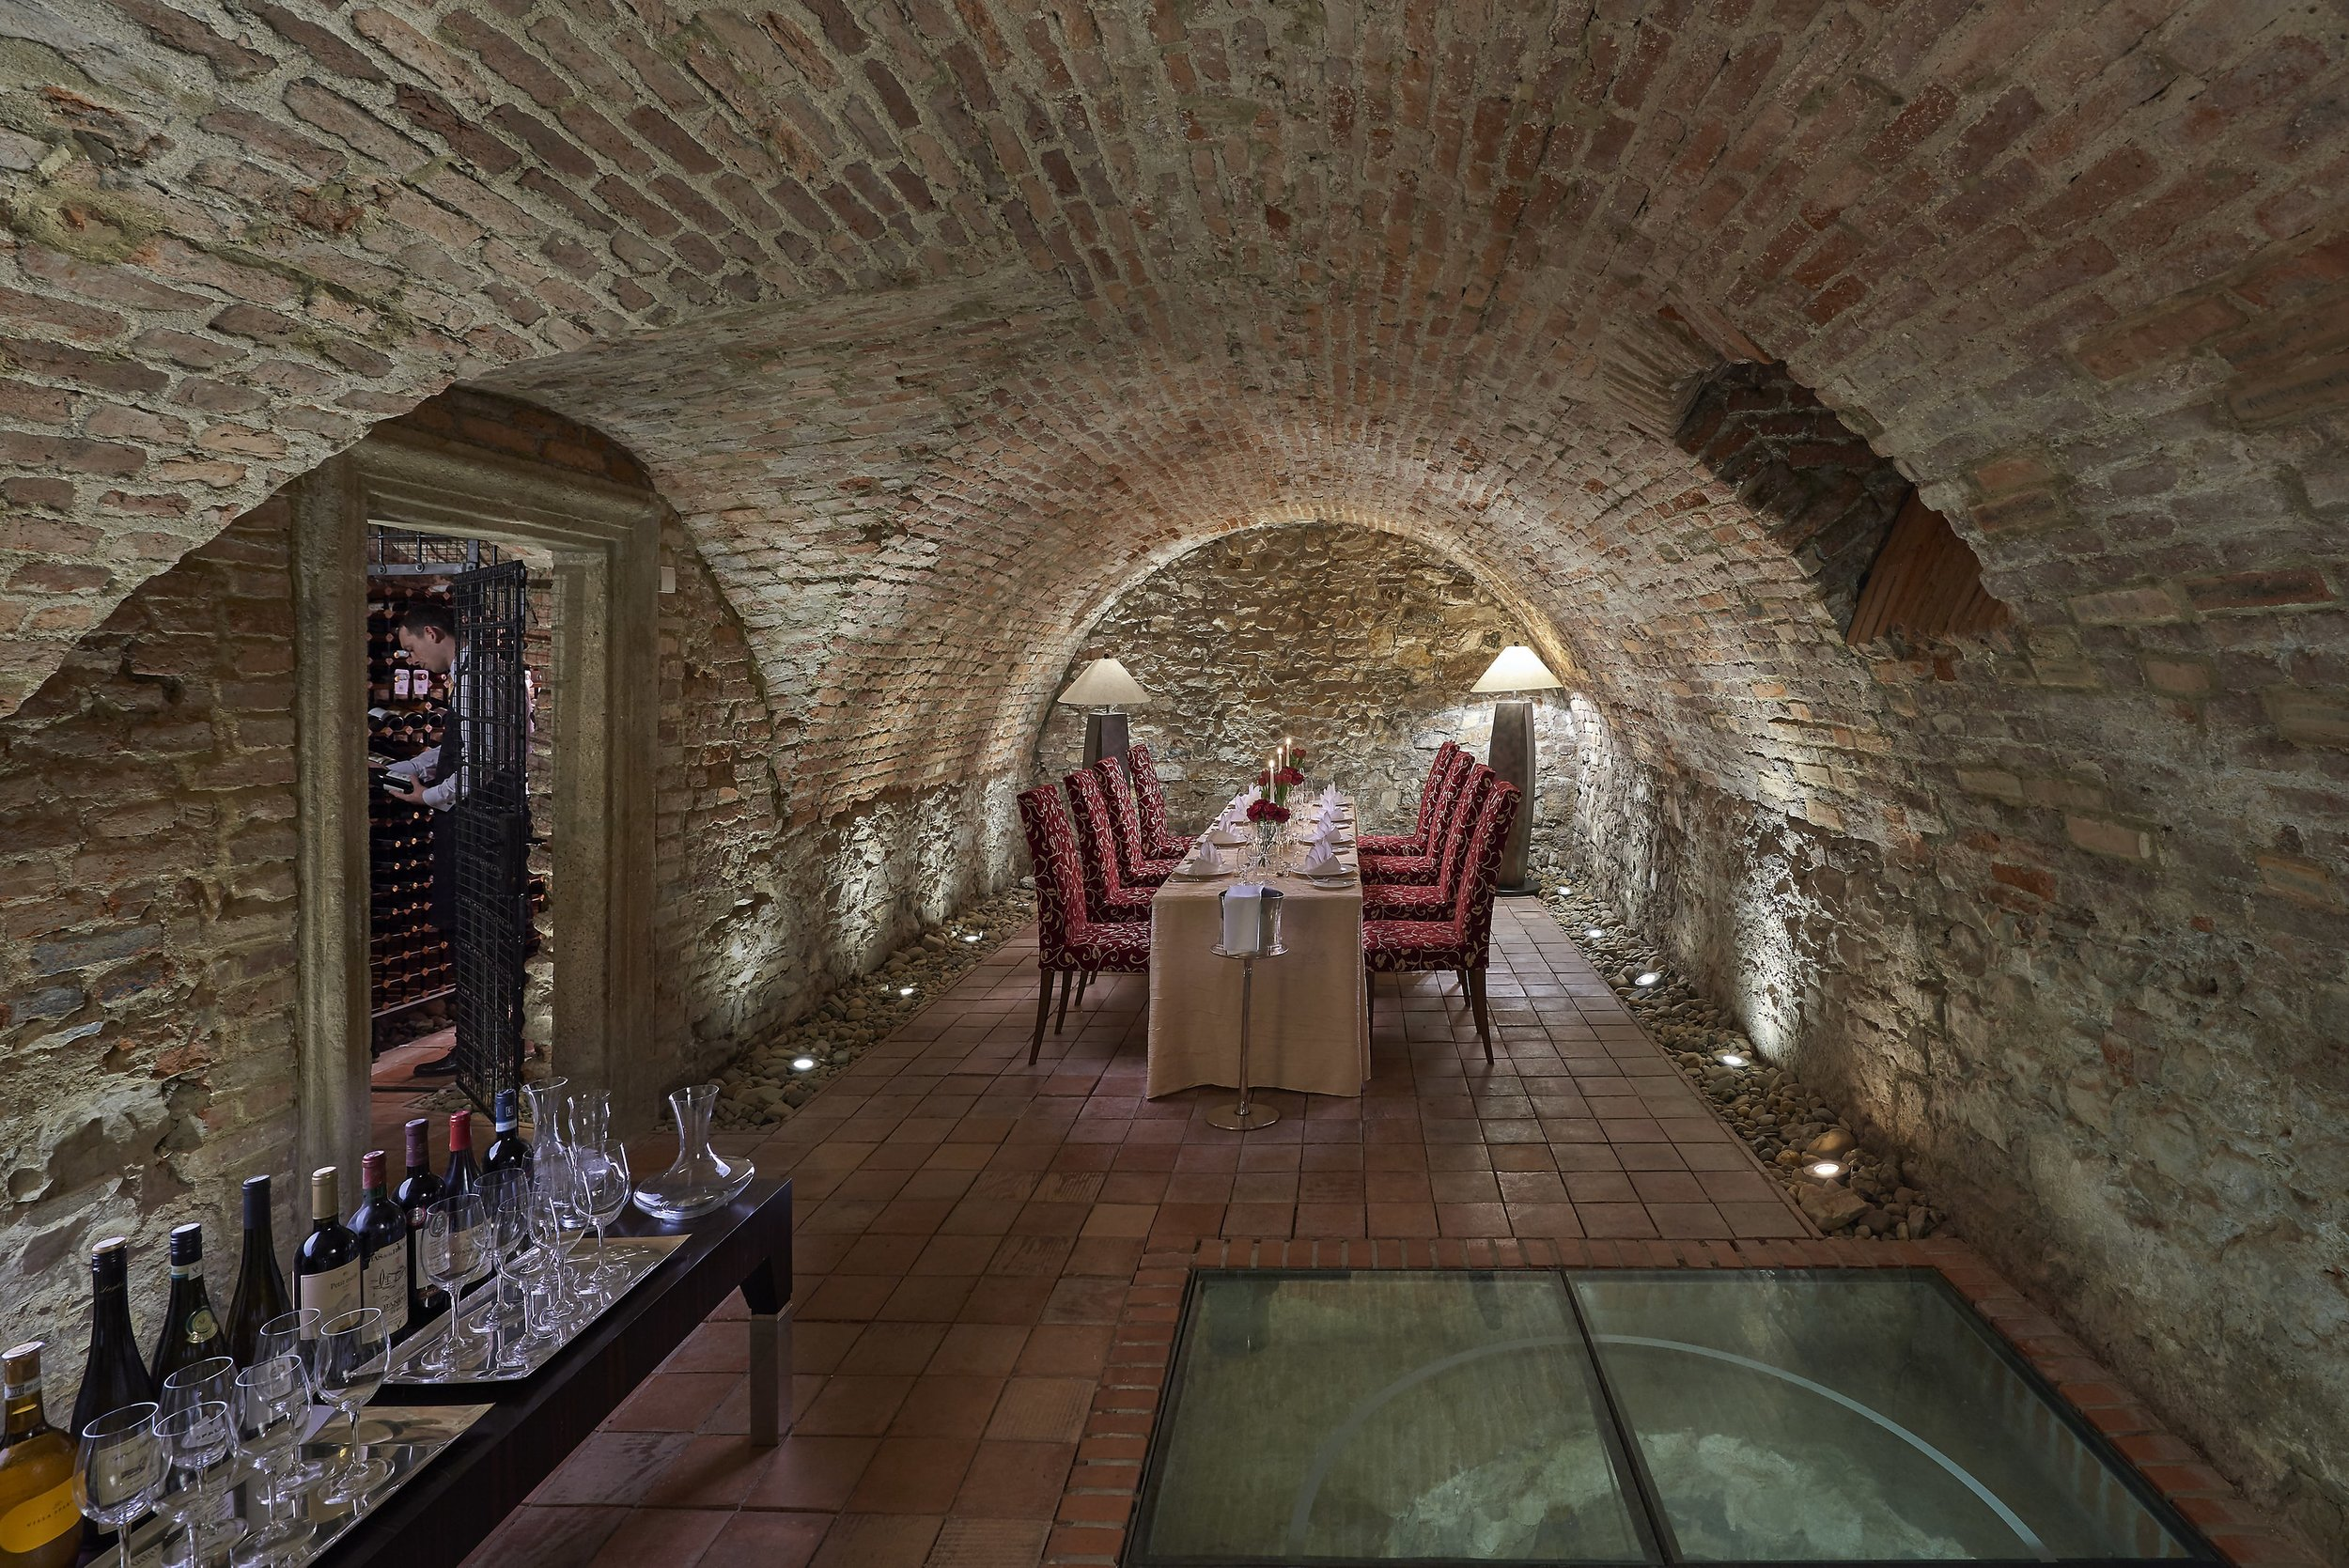 prague-15-fine-dining-wine-cellar-04-min.jpg